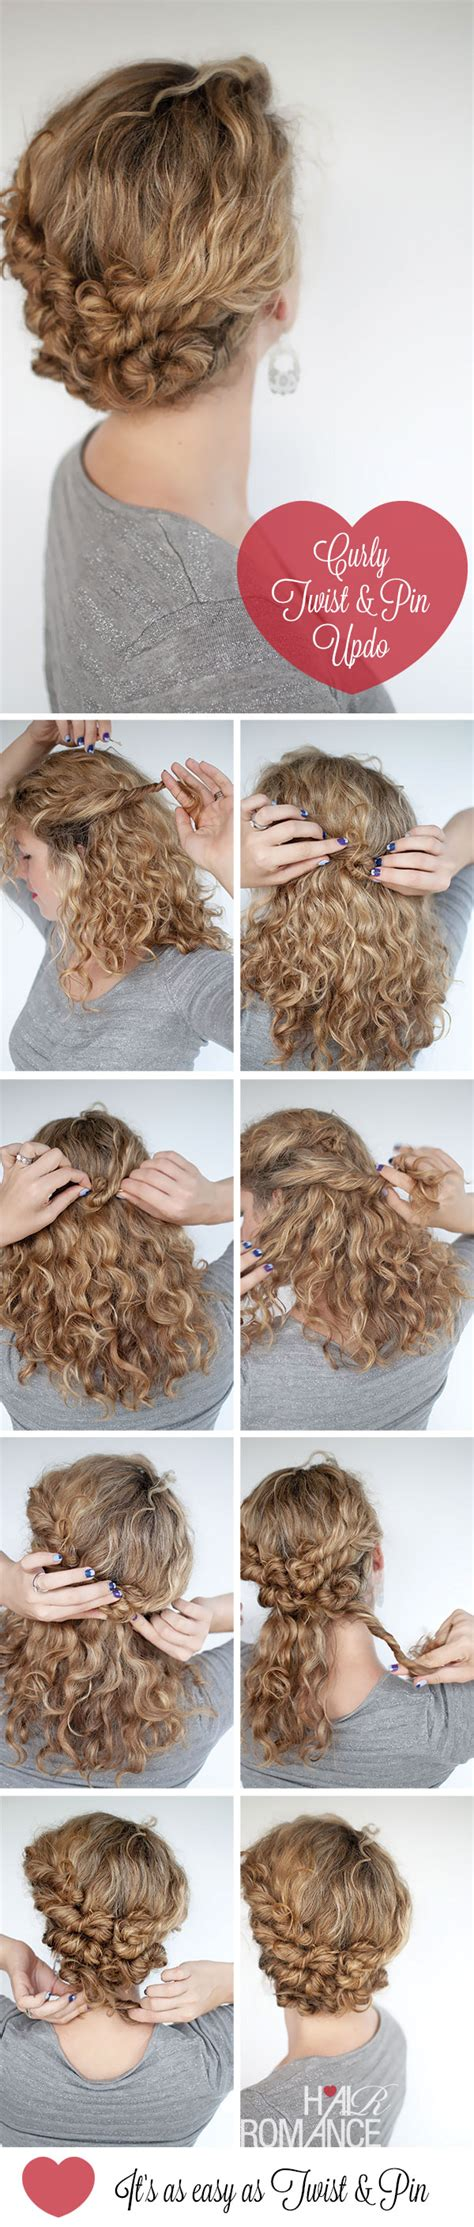 curly hair updos step by step hairstyles for long hair step by step instructions easy